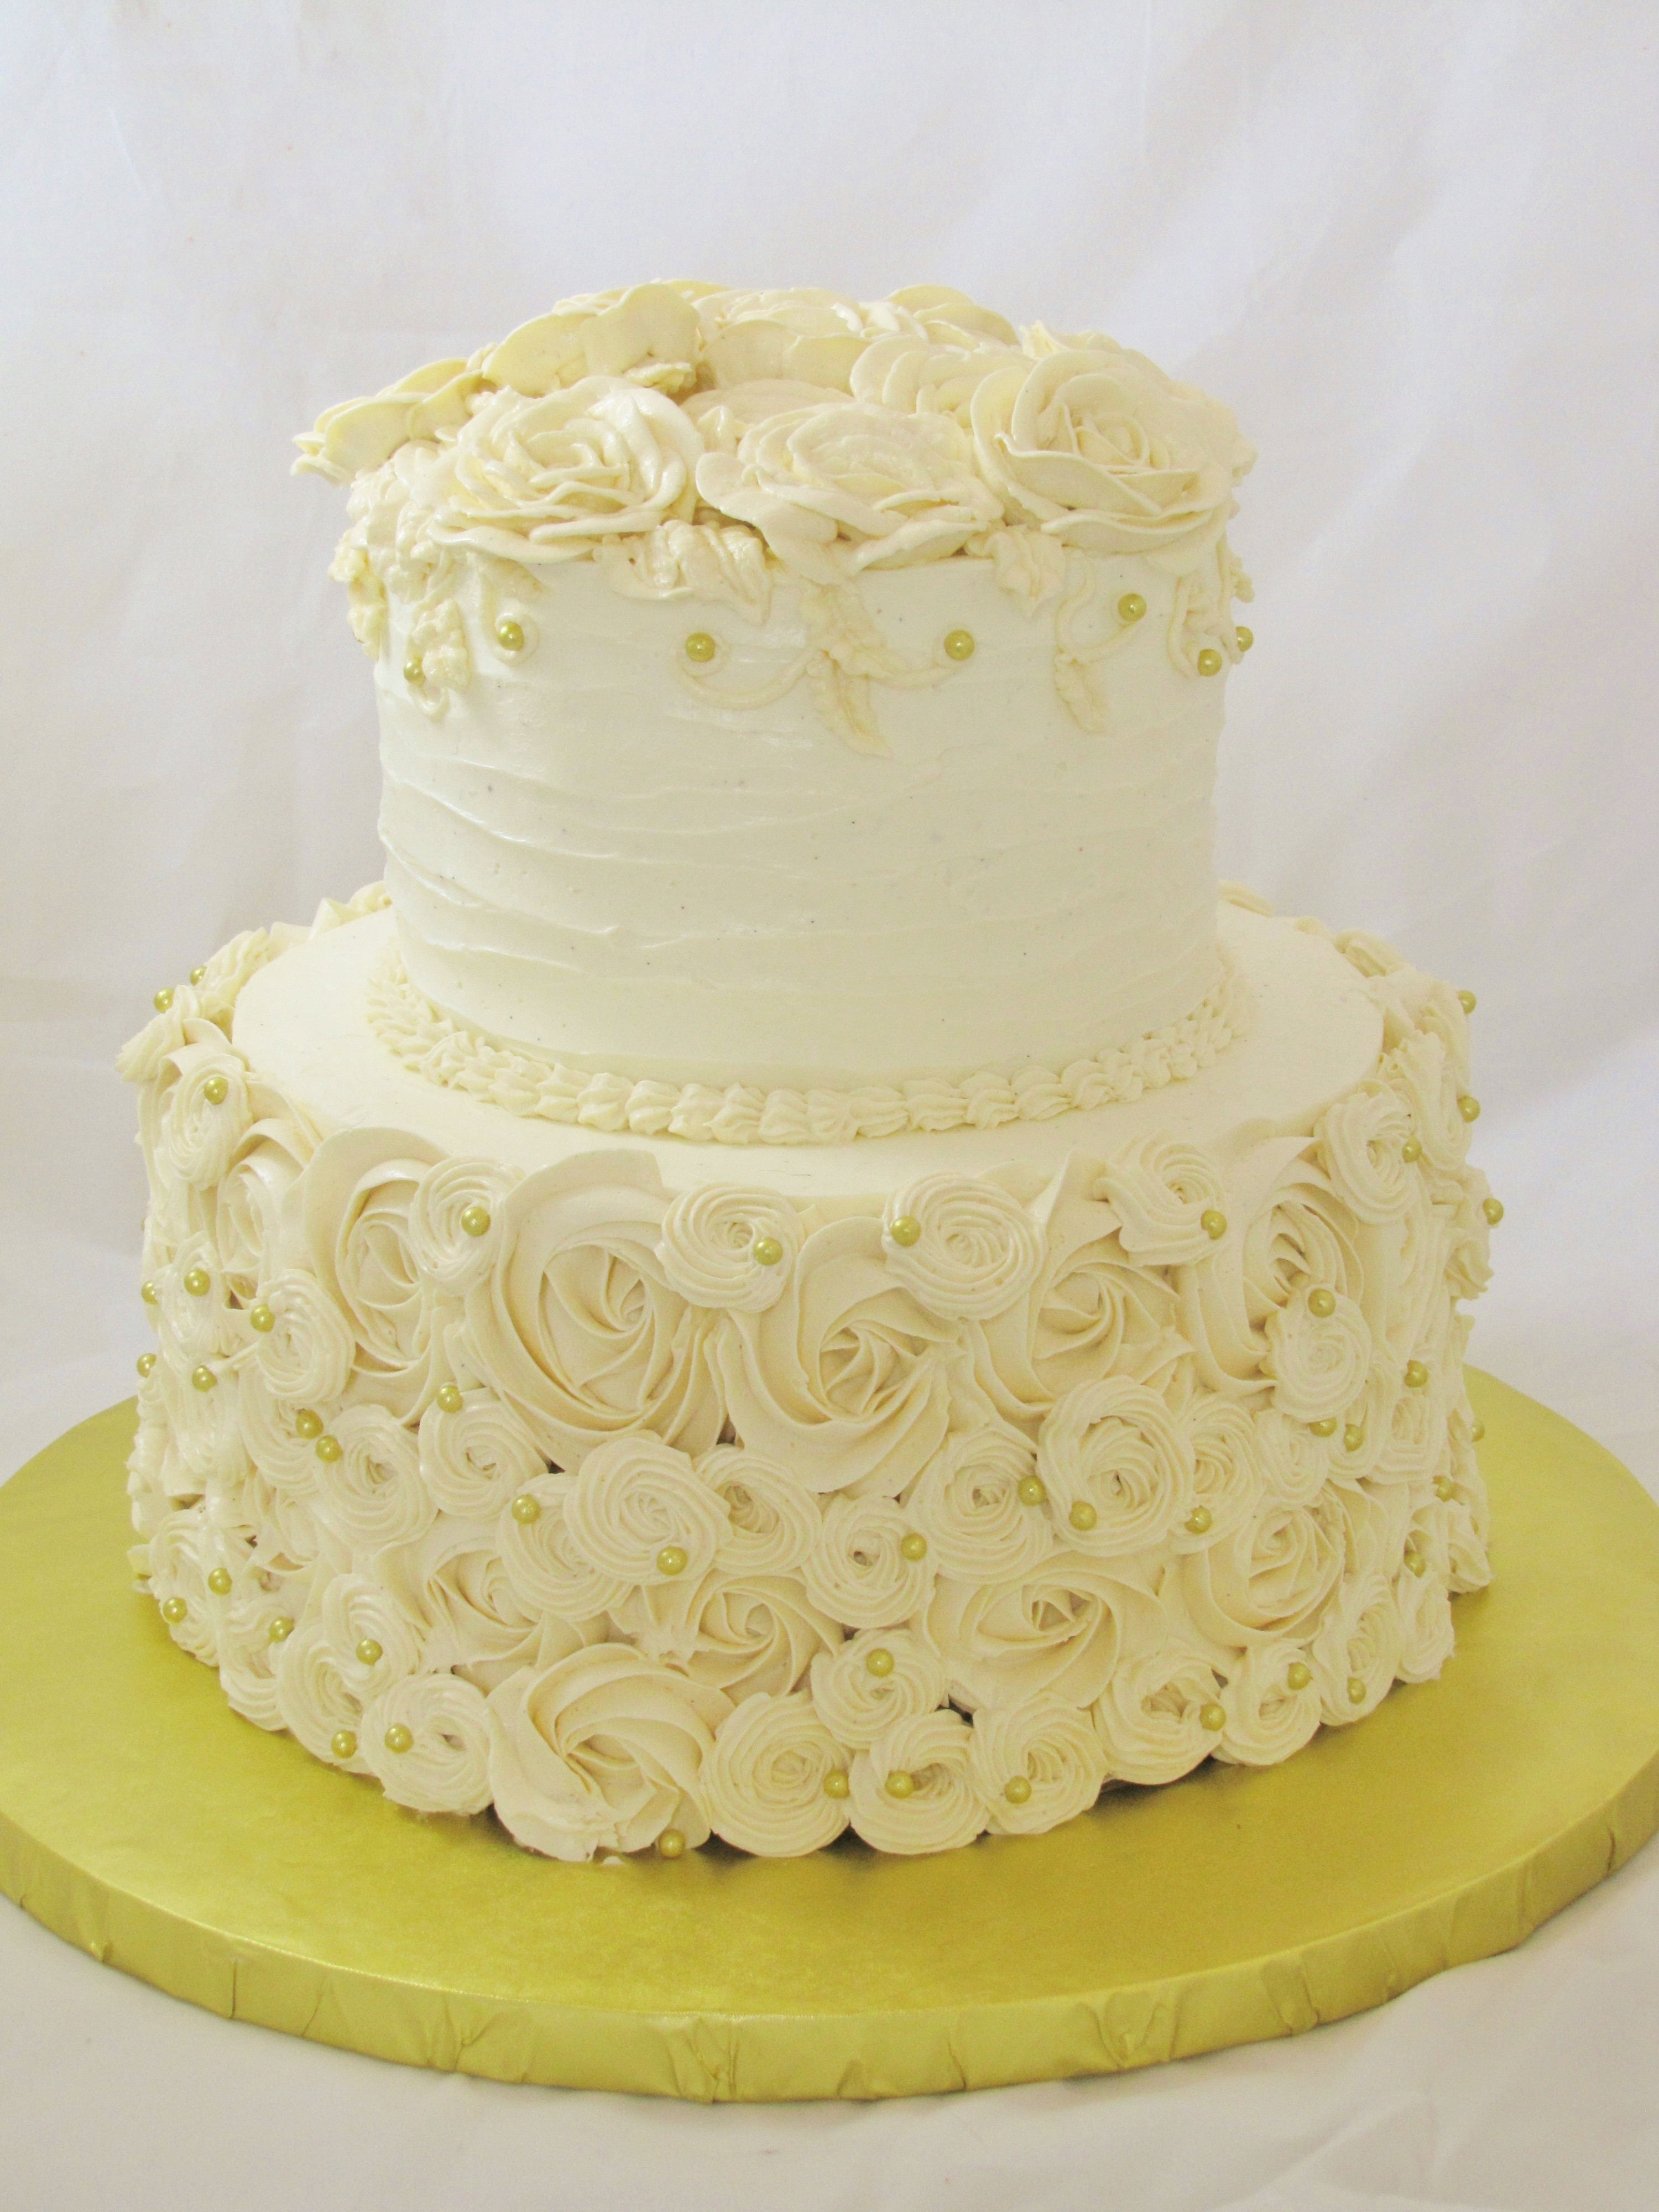 Wedding Cakes 2 Tier  Round Piped Buttercream Wedding Cake CakeCentral